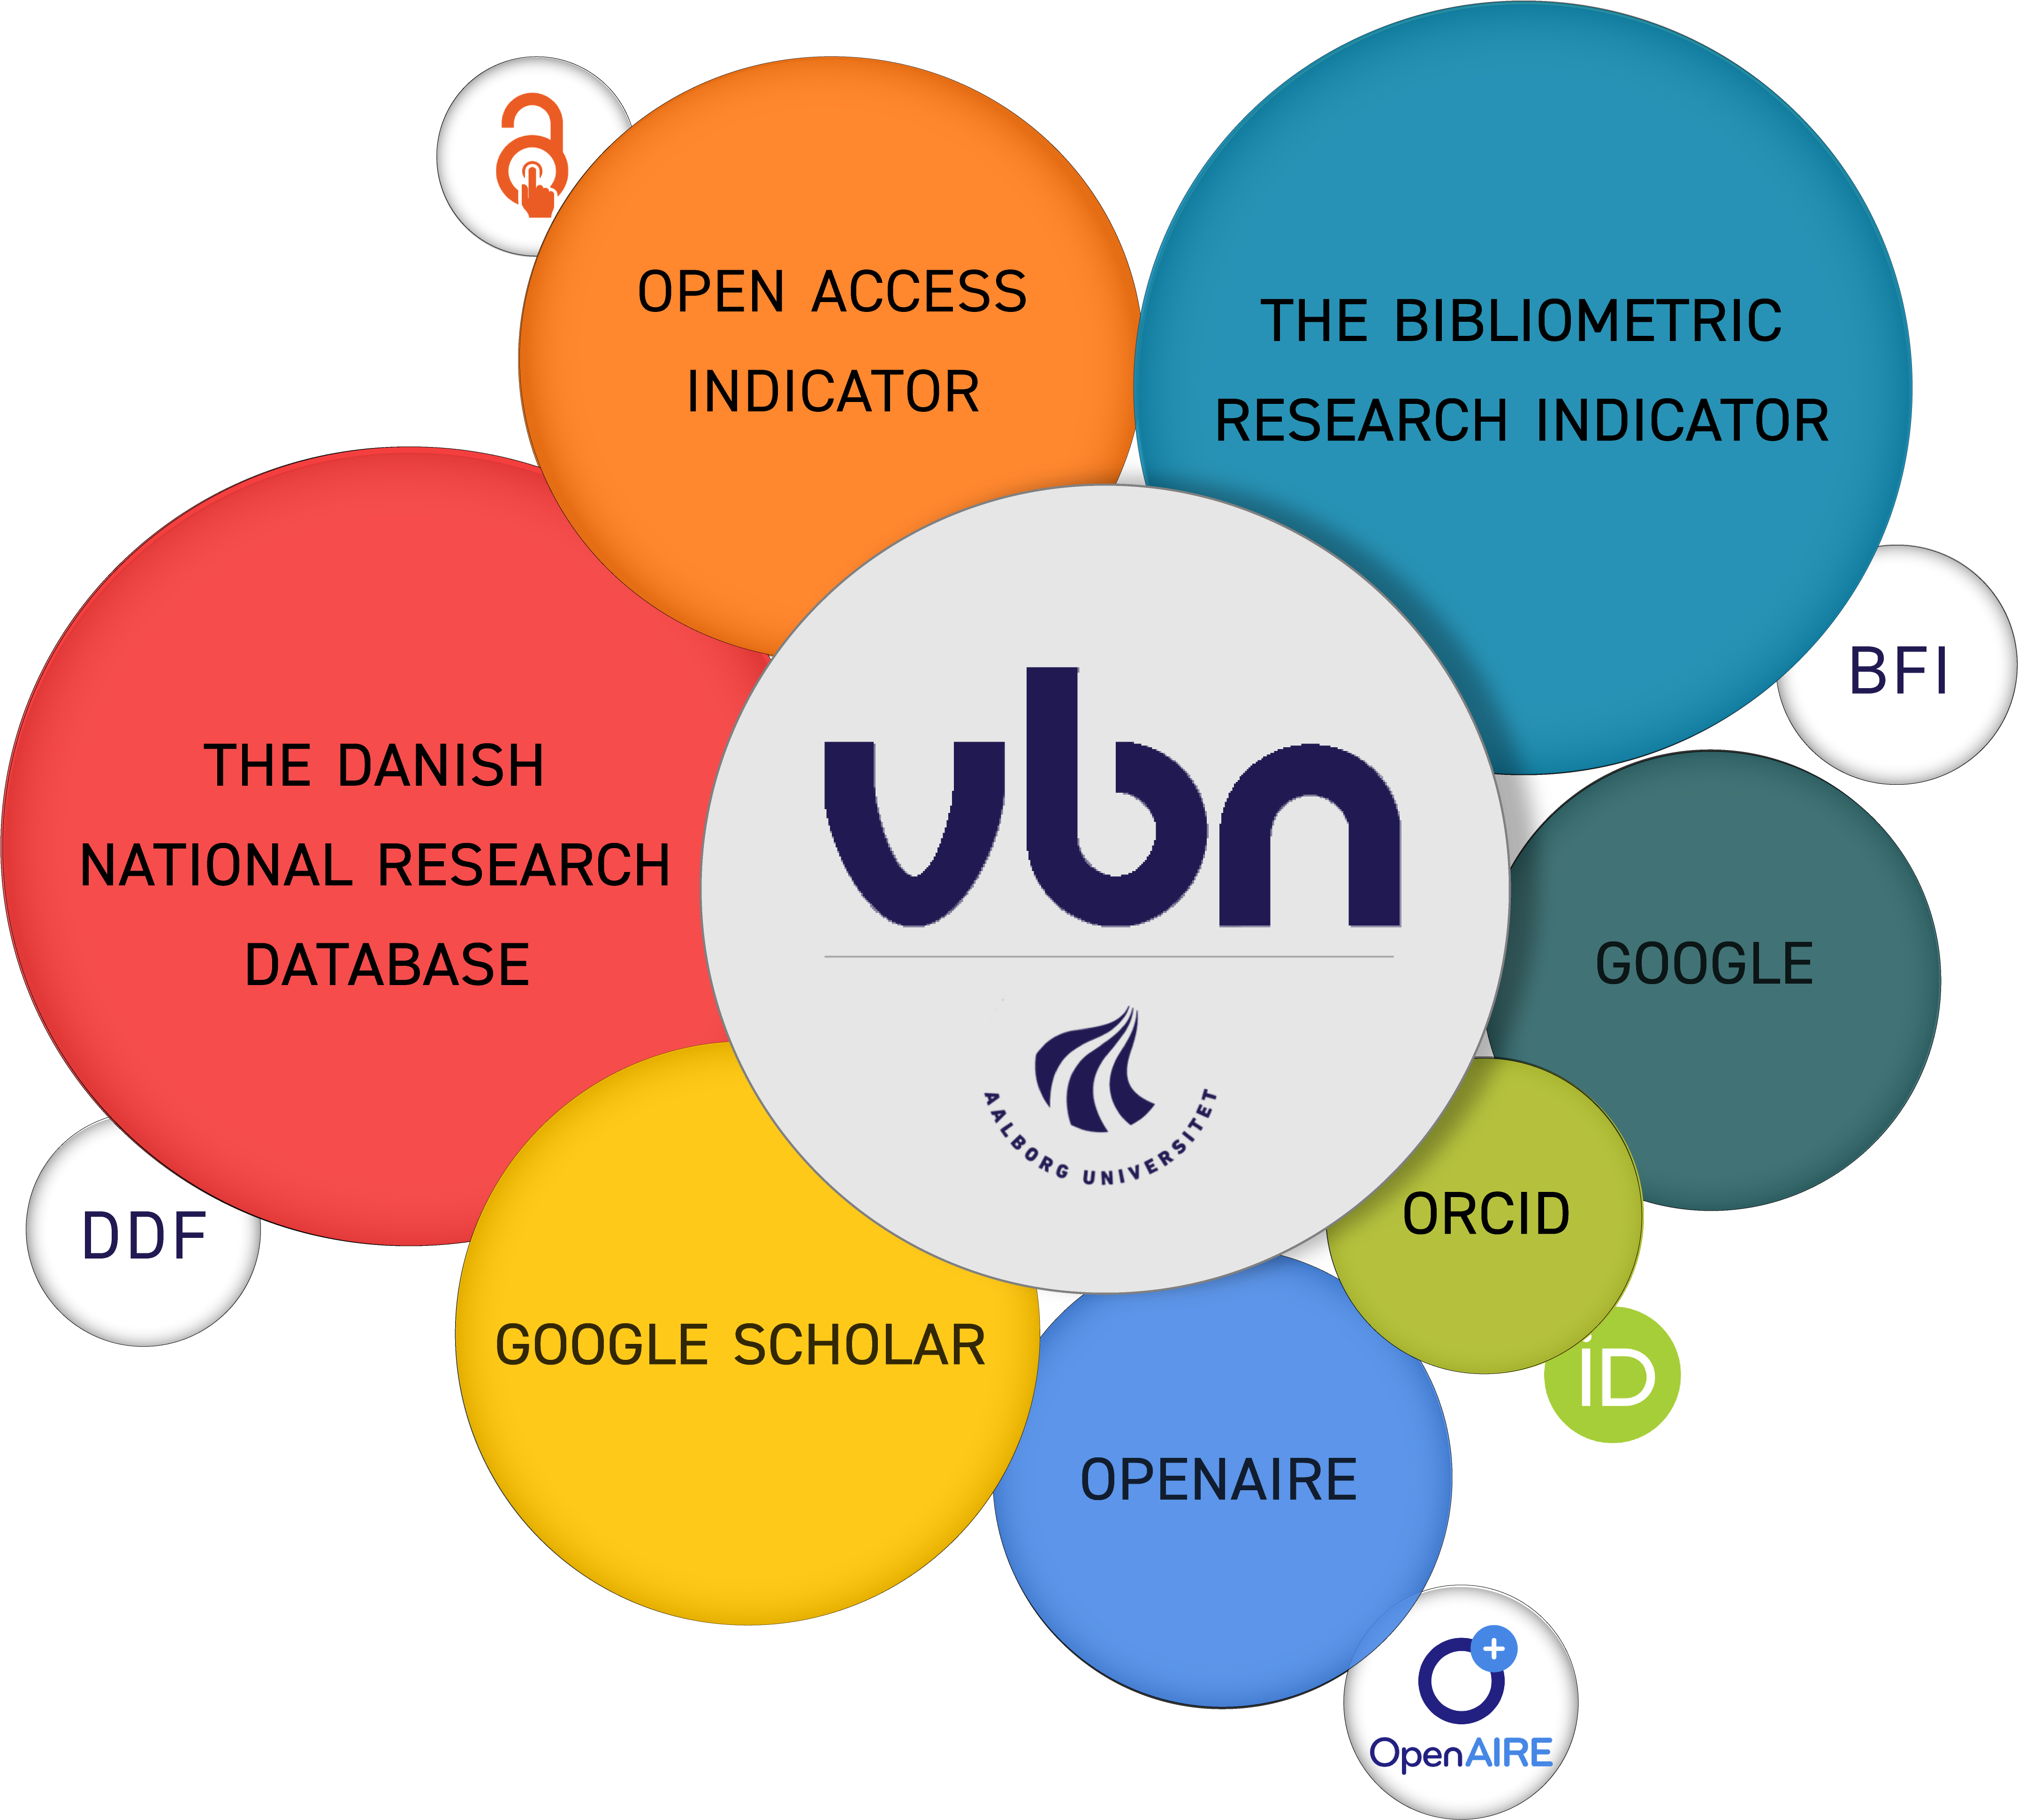 VBN content in other systems